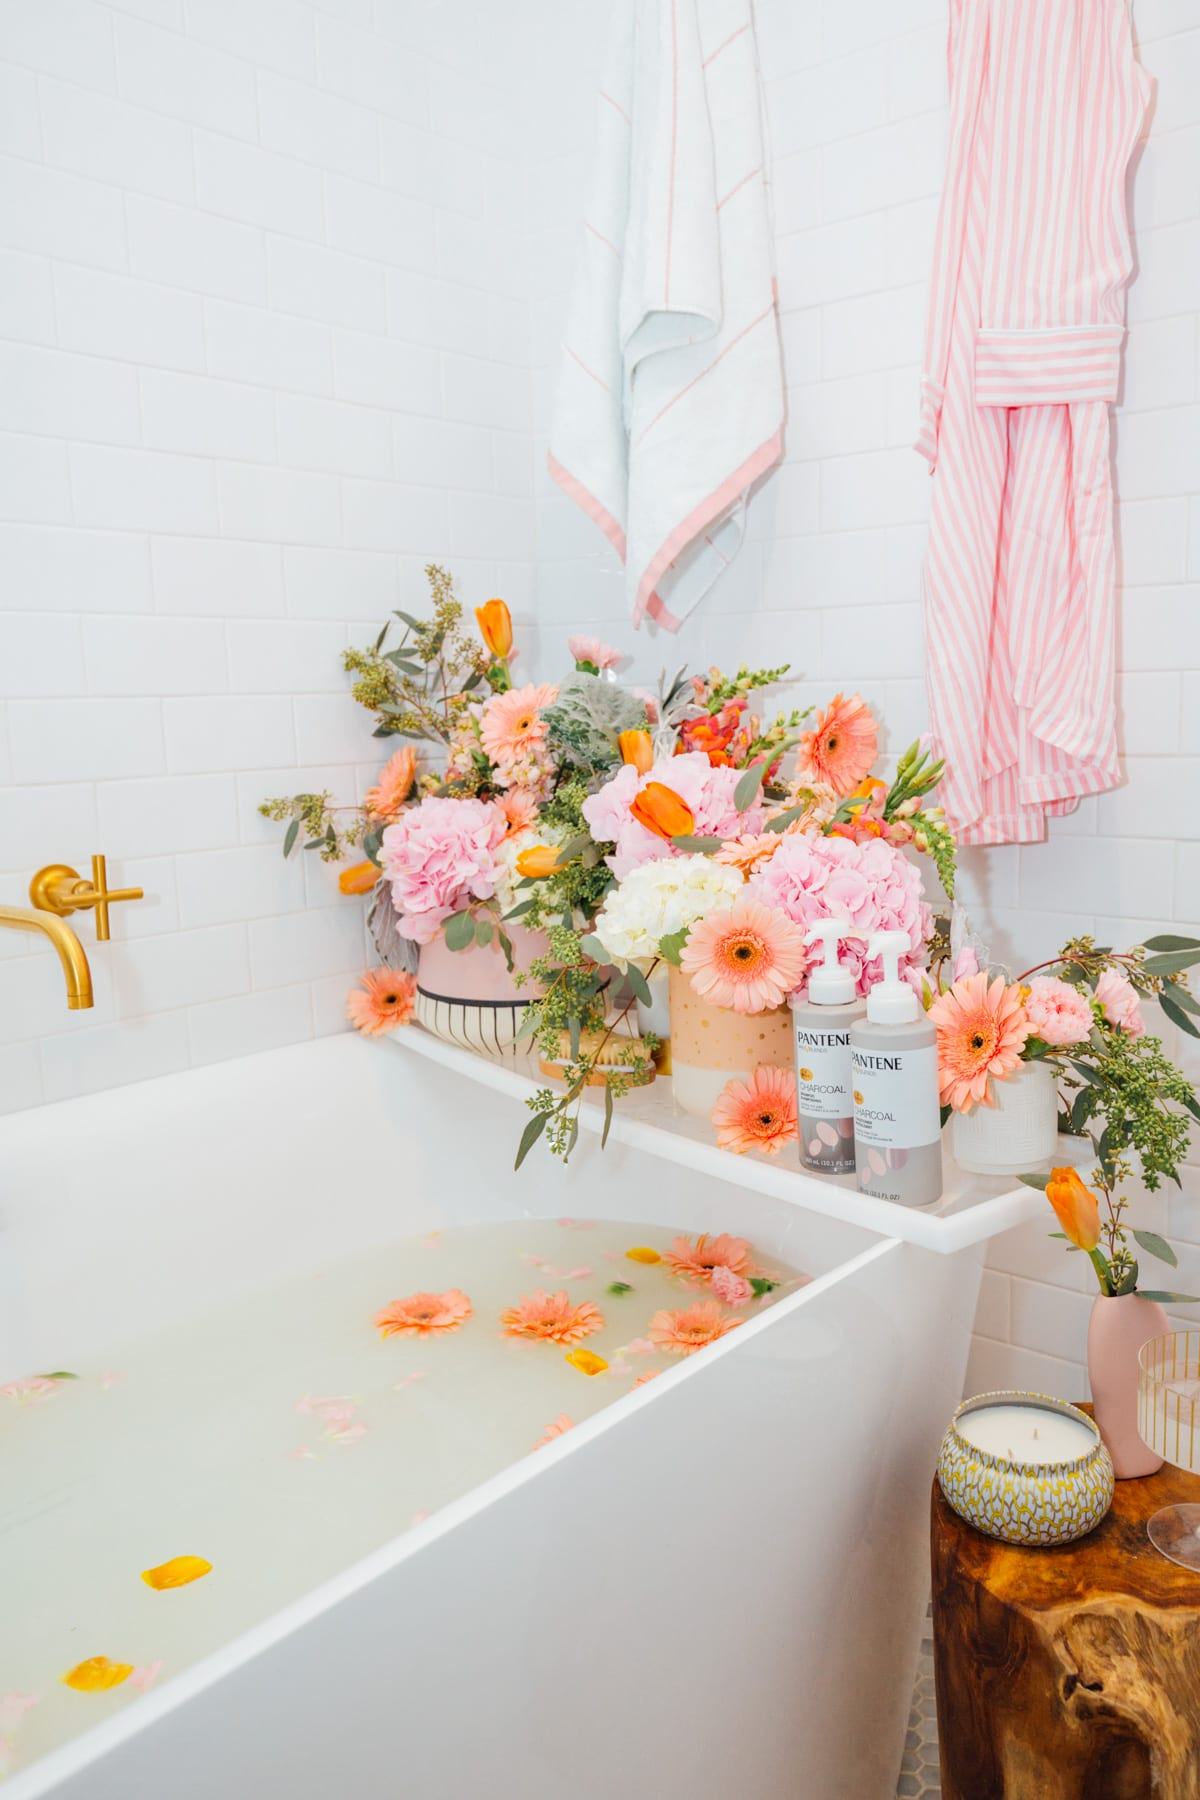 a flower milk bath and pantene charcoal shampoo and conditioner - My Easy Self-Care Tips for Feeling Confident in Yourself (Especially After Baby) - by top Houston lifestyle blogger Ashley Rose of Sugar and Cloth #beauty #tips #selfcare #hair #hairstyles #florals #flowers #showers